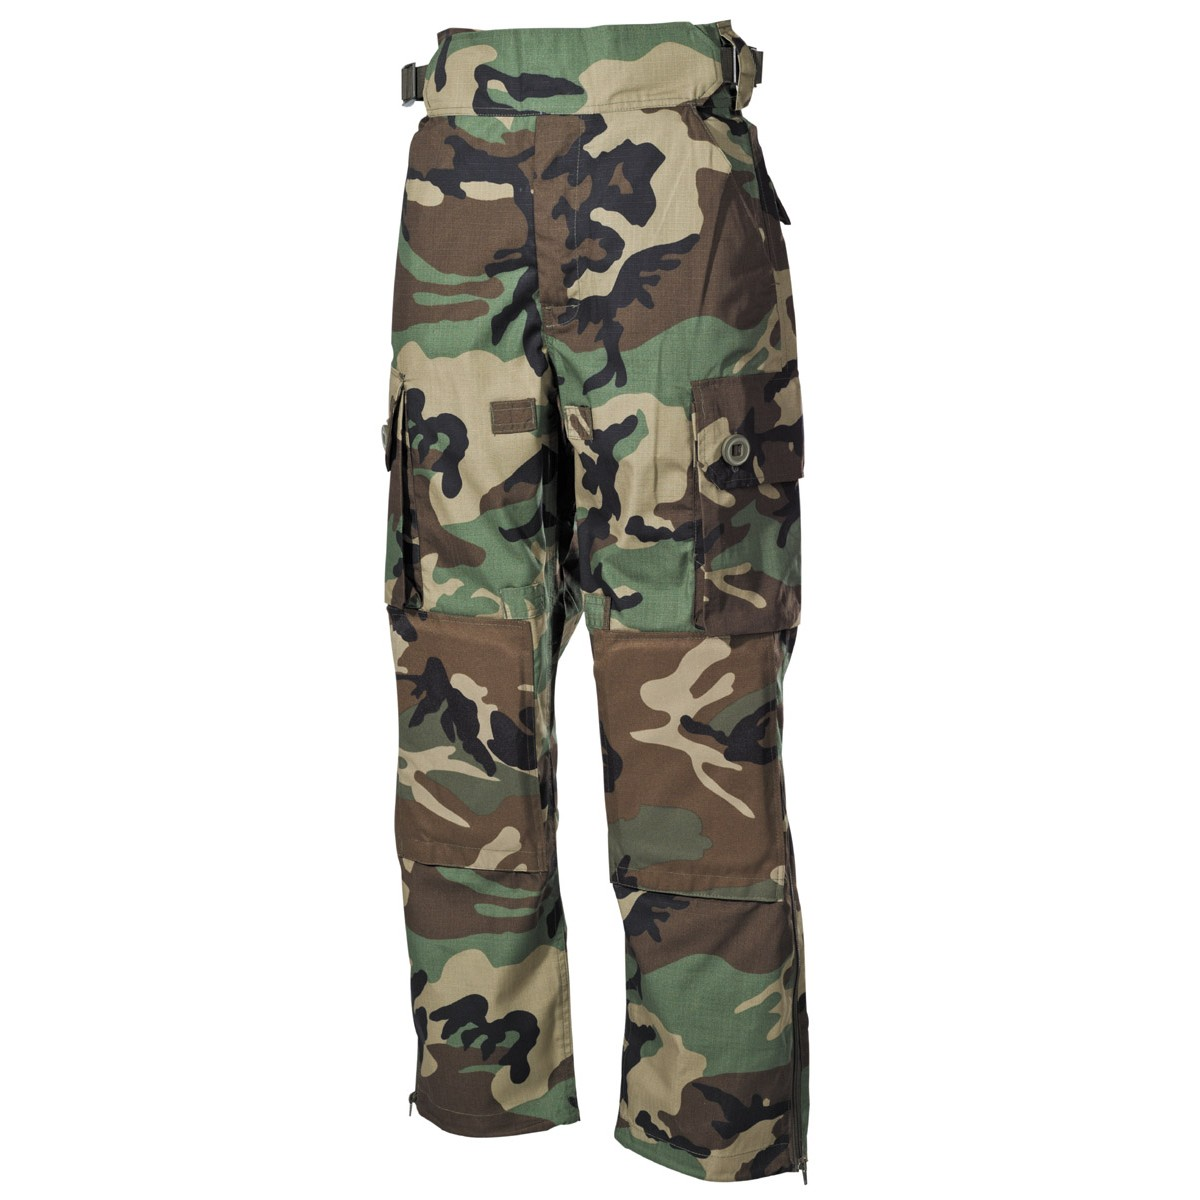 Premium Tactical Military Battle Trousers COMMANDOS - Woodland